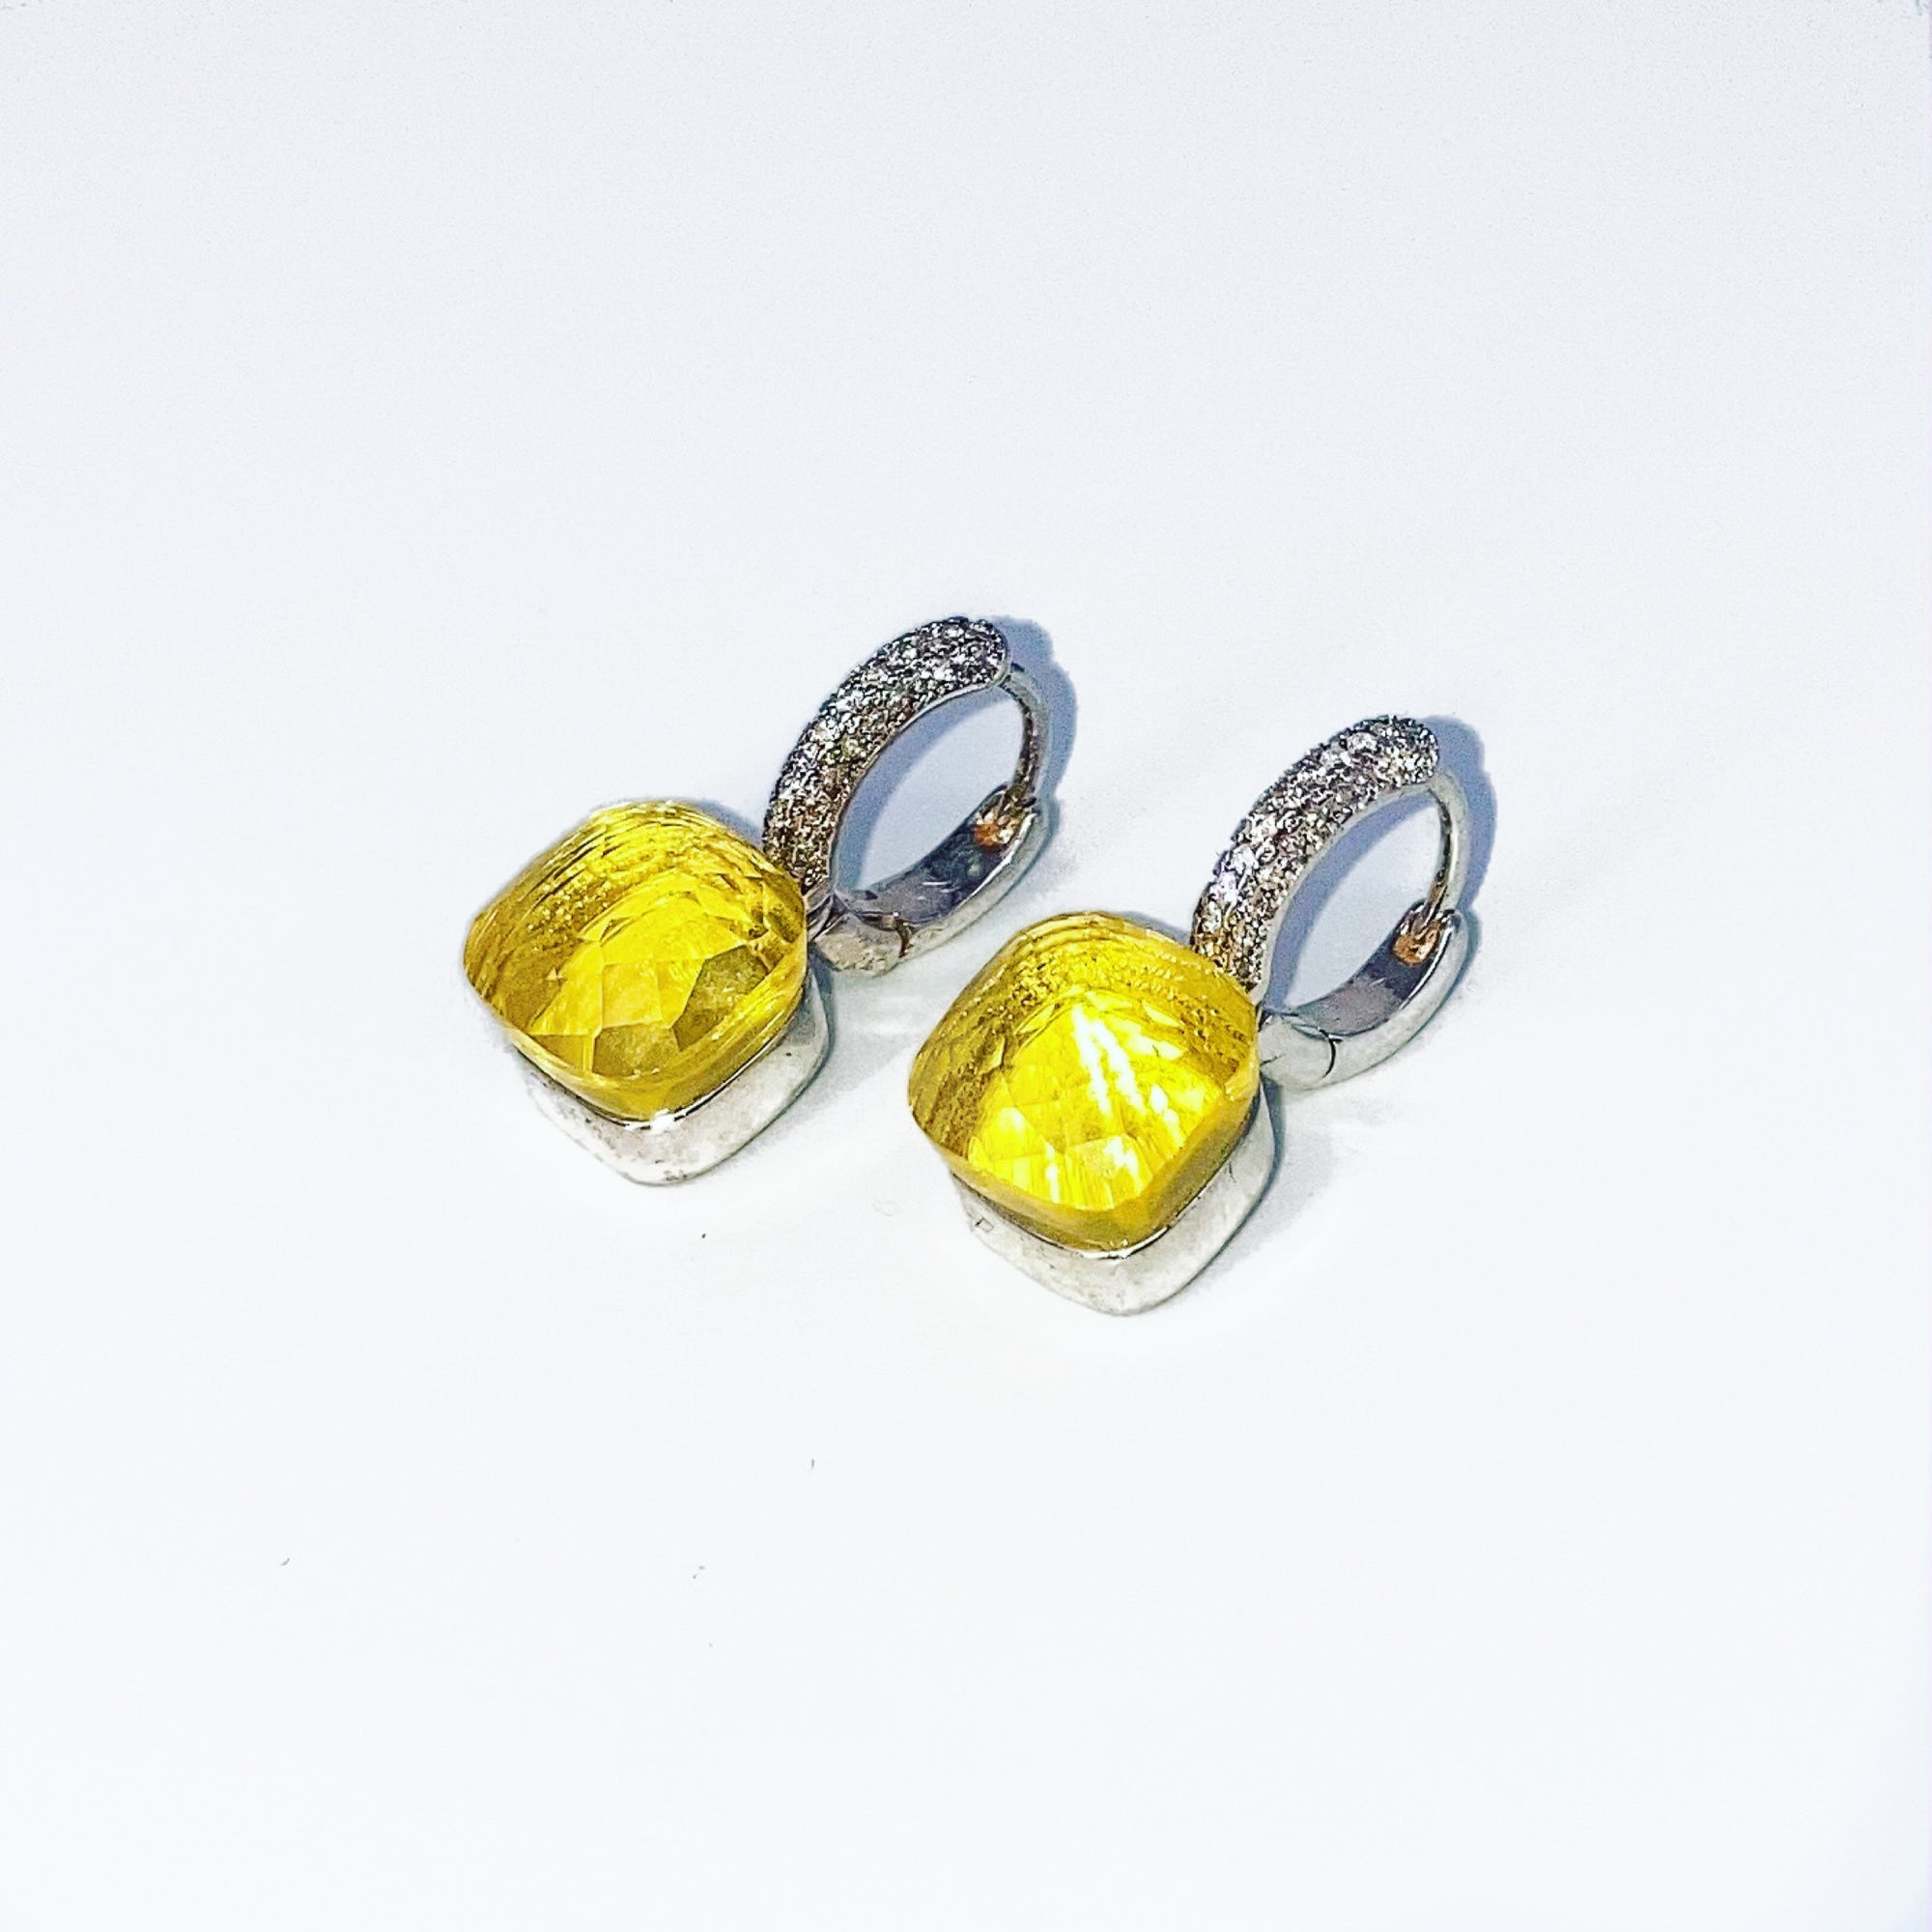 Canary Islands Drop Earrings with Micro Pave